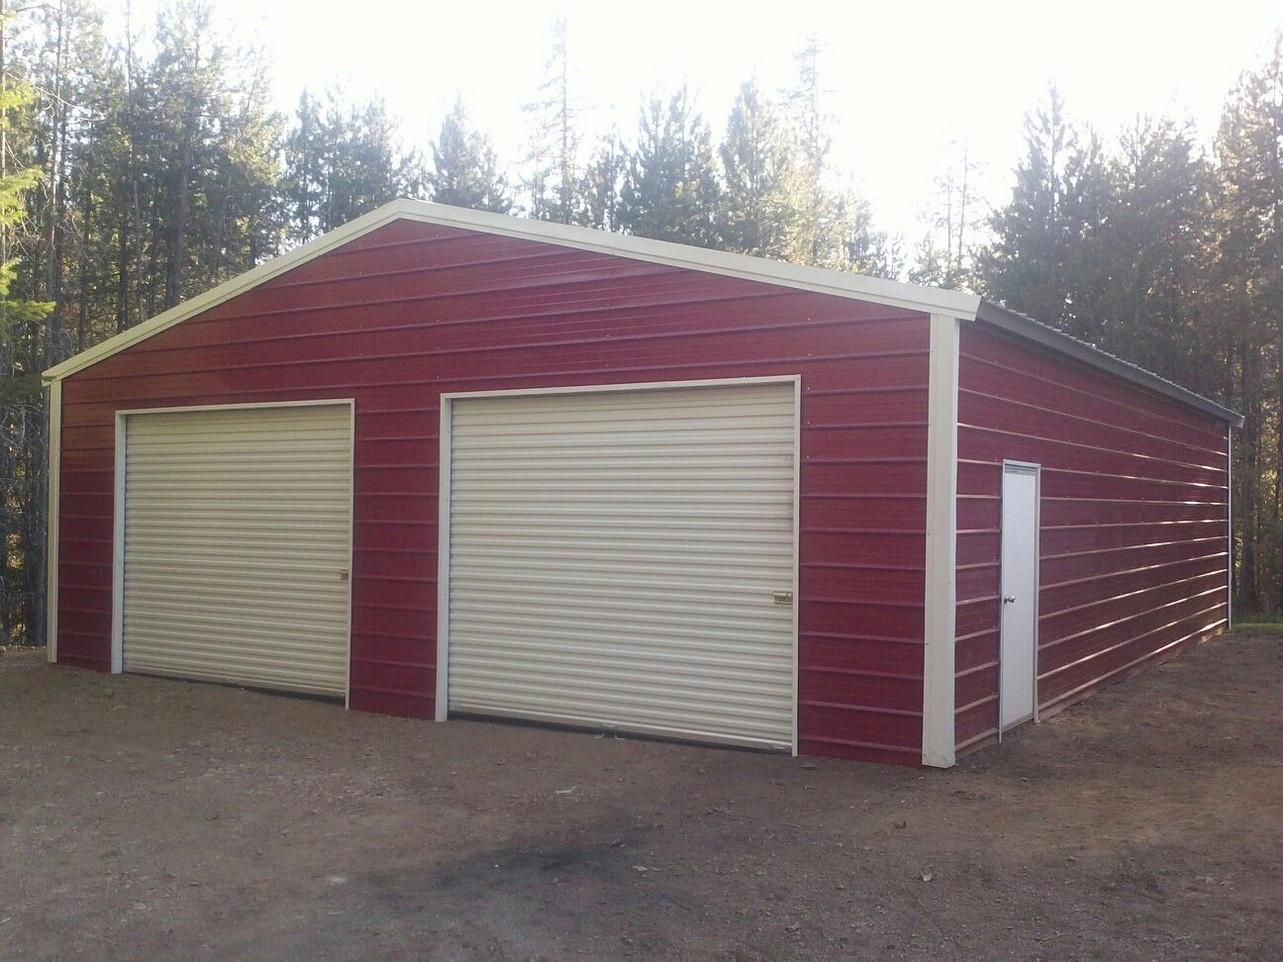 Pics of common commercial metal buildings. metalbuildings